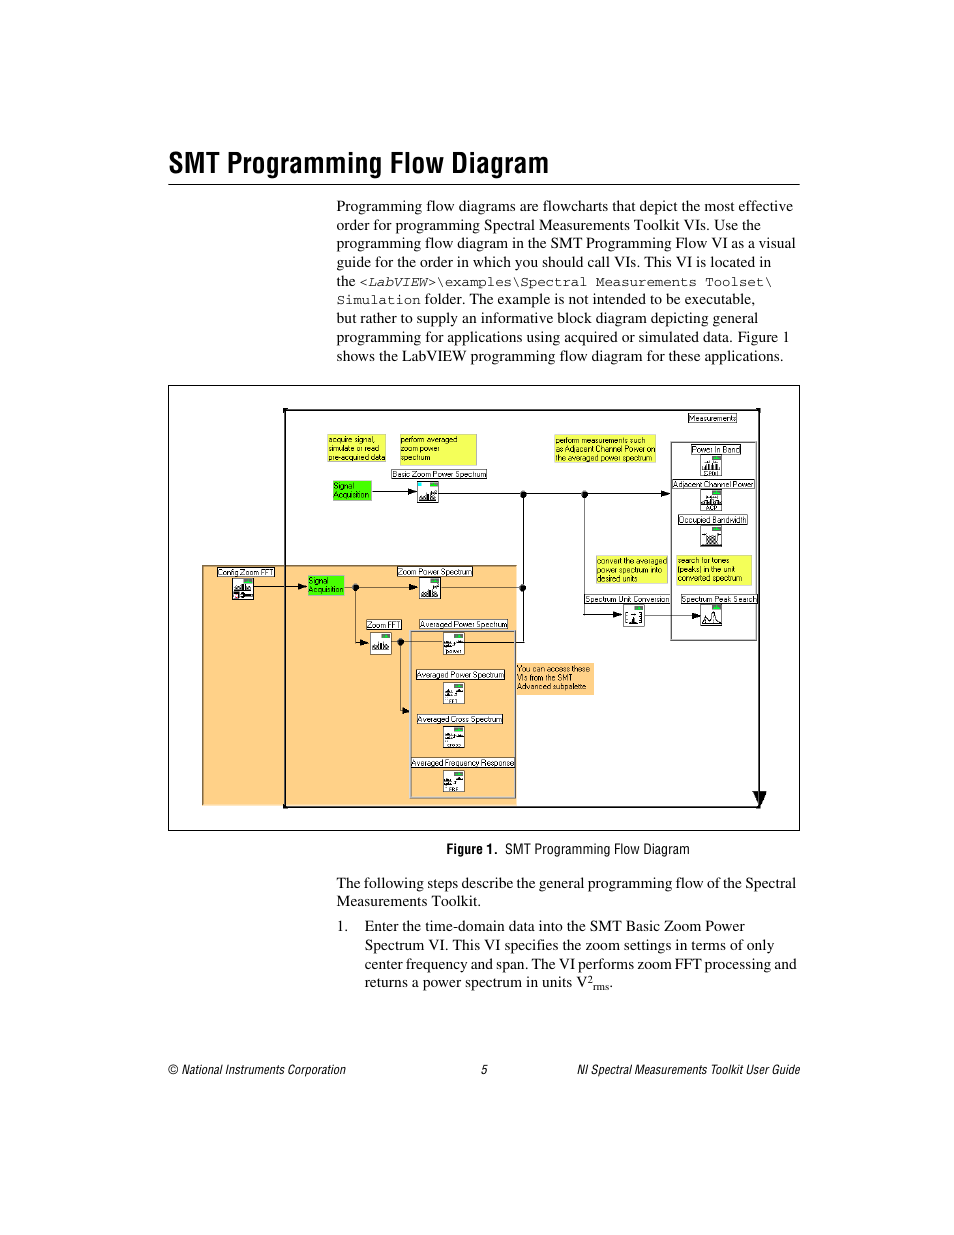 hight resolution of smt programming flow diagram figure 1 smt programming flow diagram national instruments ni spectral measurements toolkit user manual page 5 35